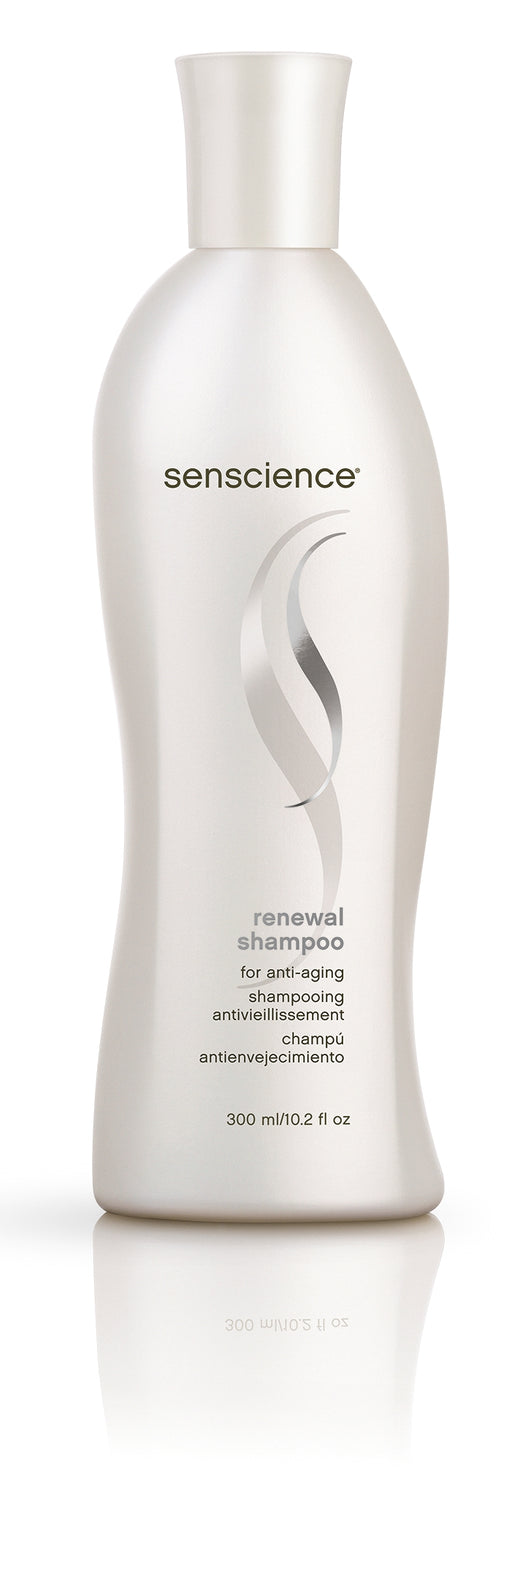 Senscience-Renewal Shampoo for Anti-Aging 10.1oz